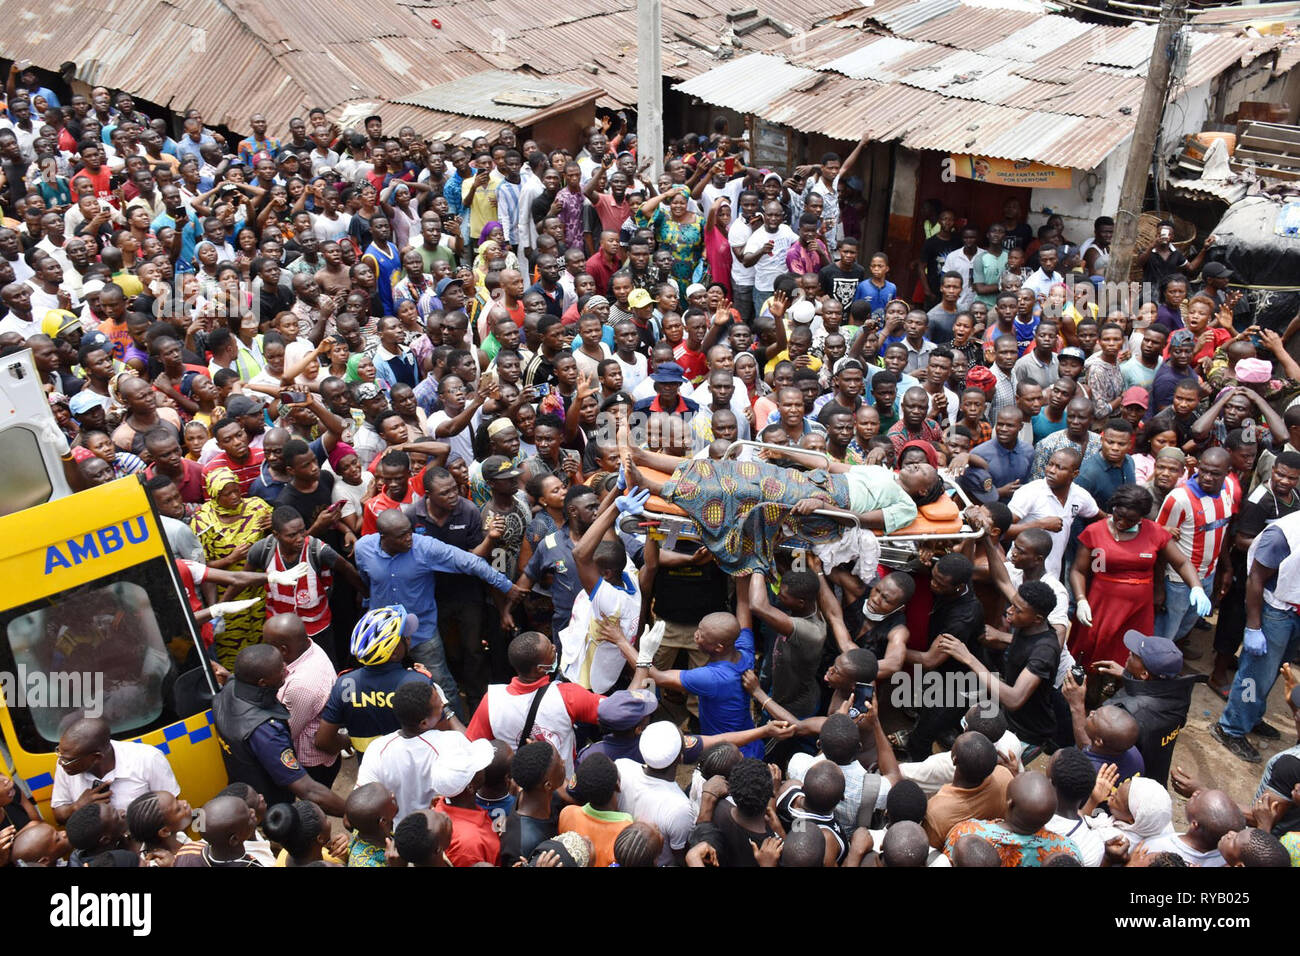 Lagos, Nigeria. 13th Mar, 2019. People carry an injured person rescued from the scene of a building collapse in Lagos, Nigeria, on March 13, 2019. A school building in Lagos, Nigeria's commercial hub, on Wednesday collapsed with many primary school pupils feared dead, an eye witness and a local official said. Credit: NAN/Xinhua/Alamy Live News - Stock Image